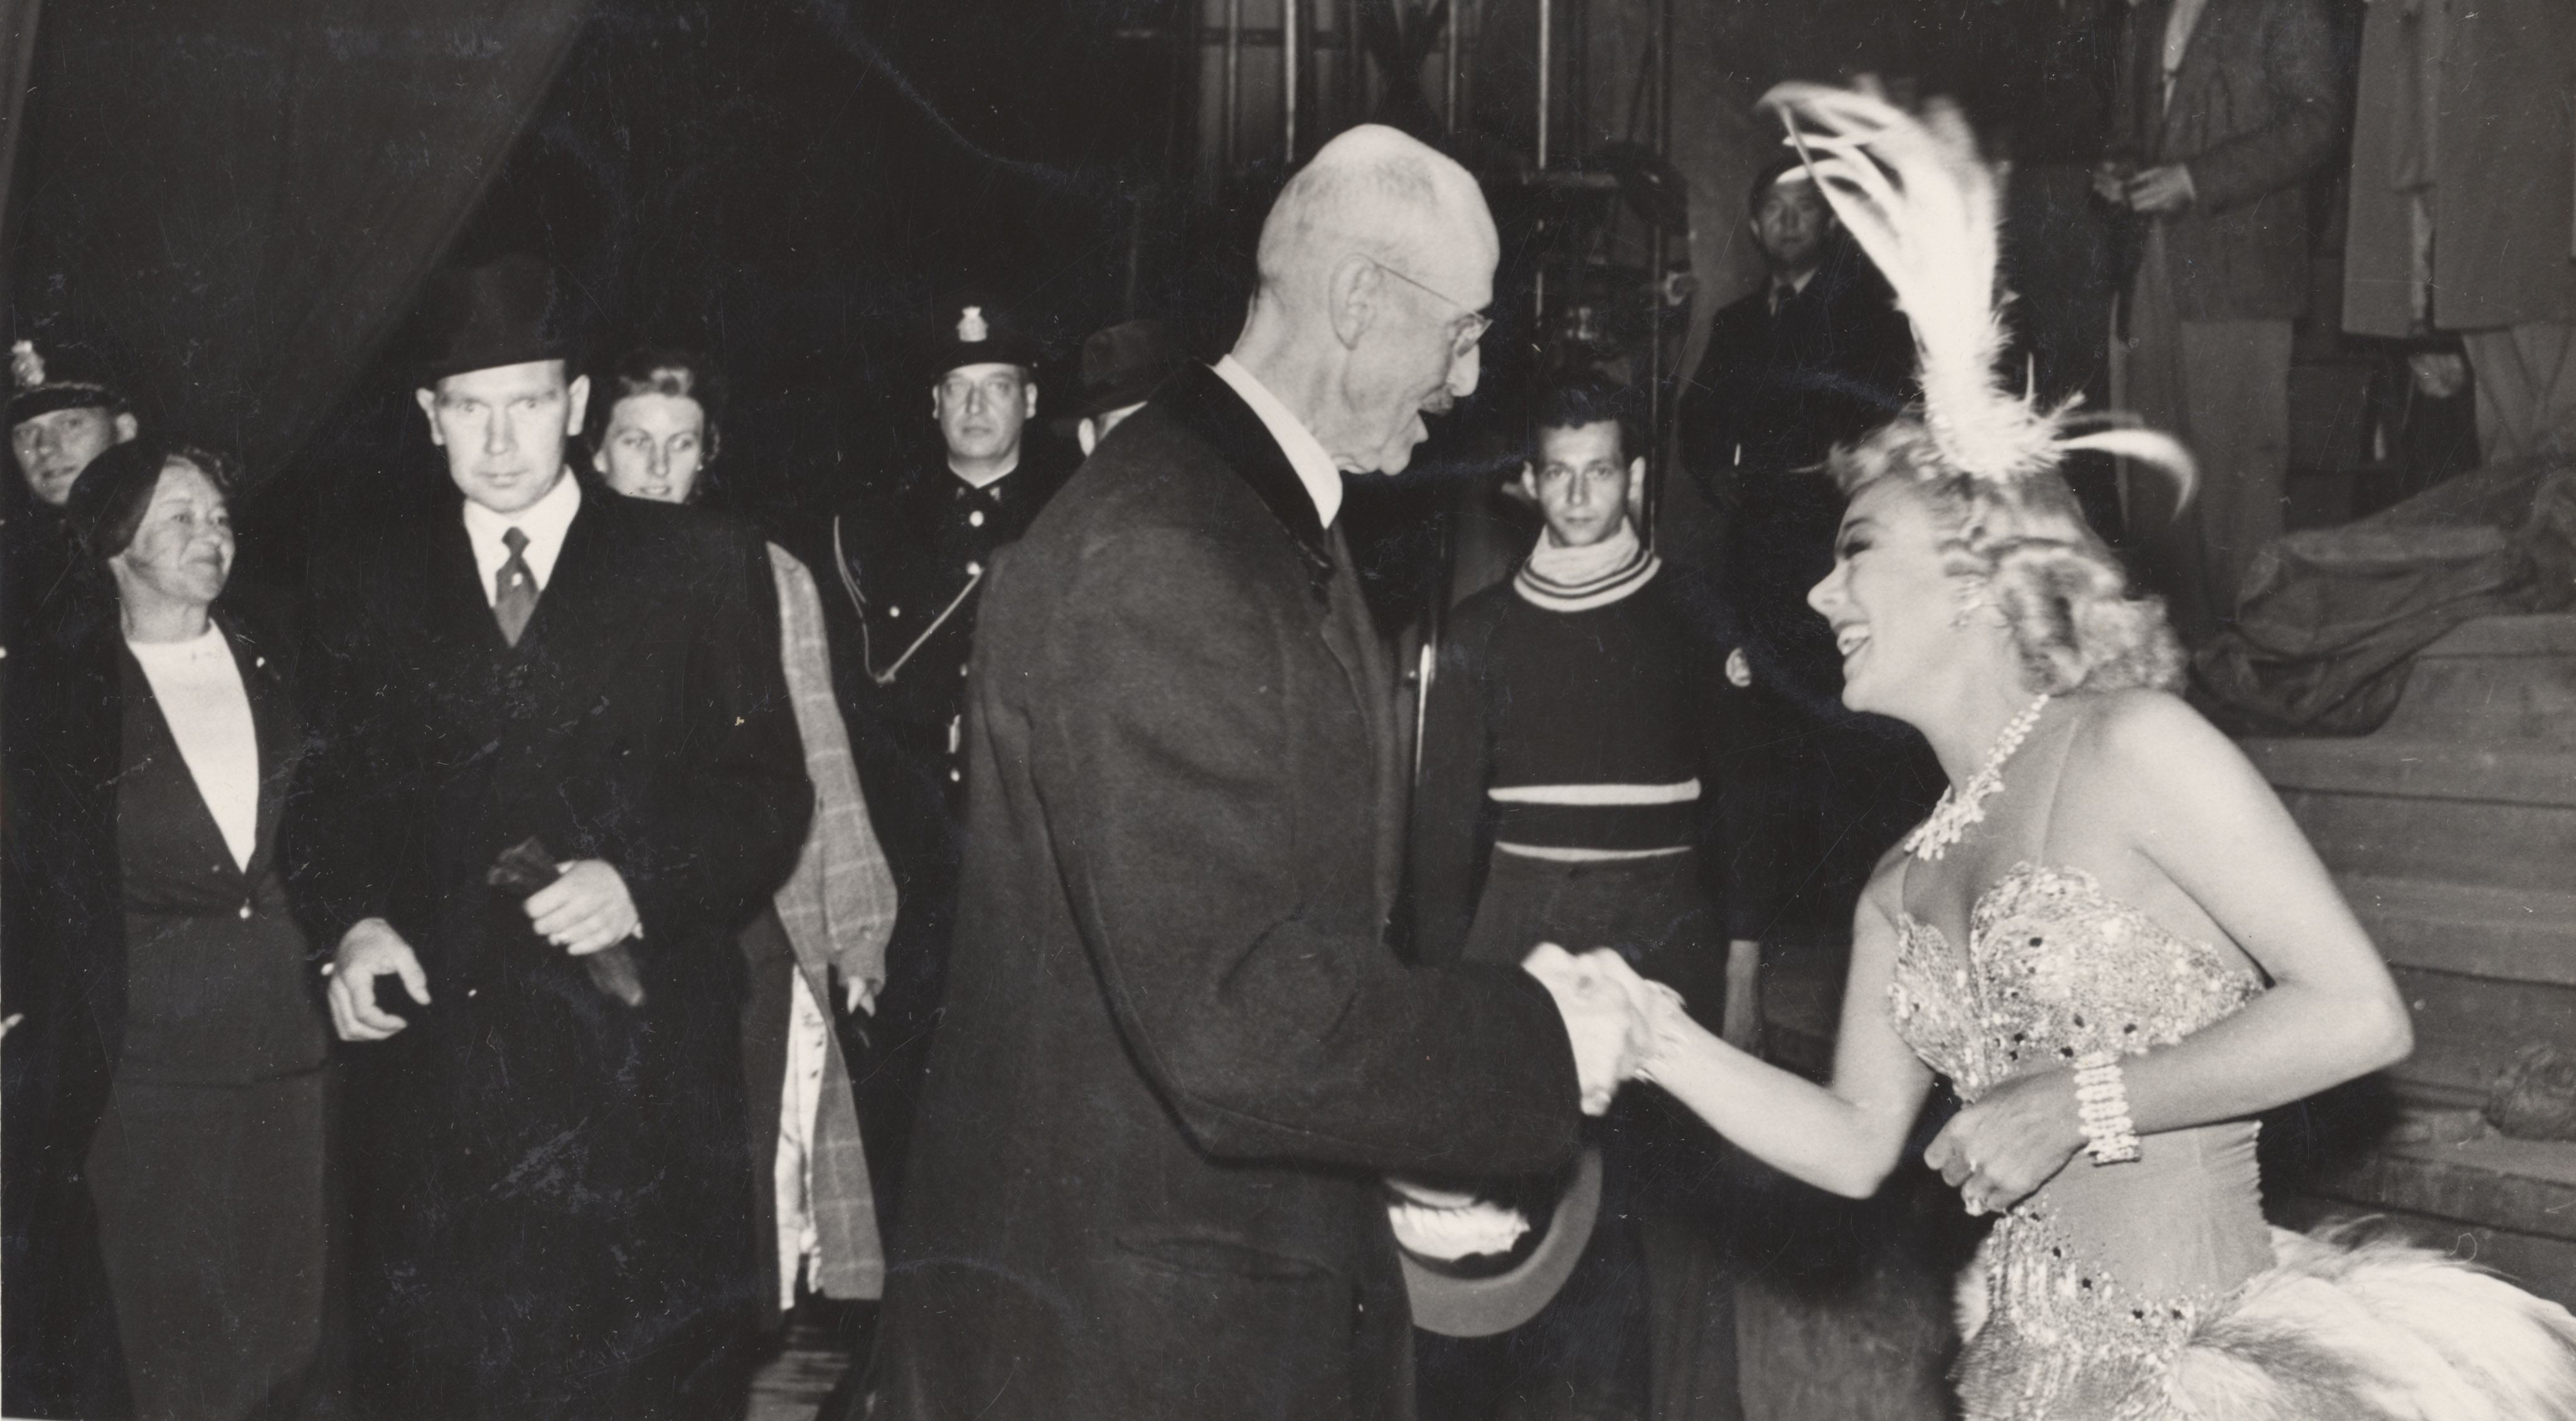 King Haakon greets Sonja Henie after a skating show at Jordal Amfi